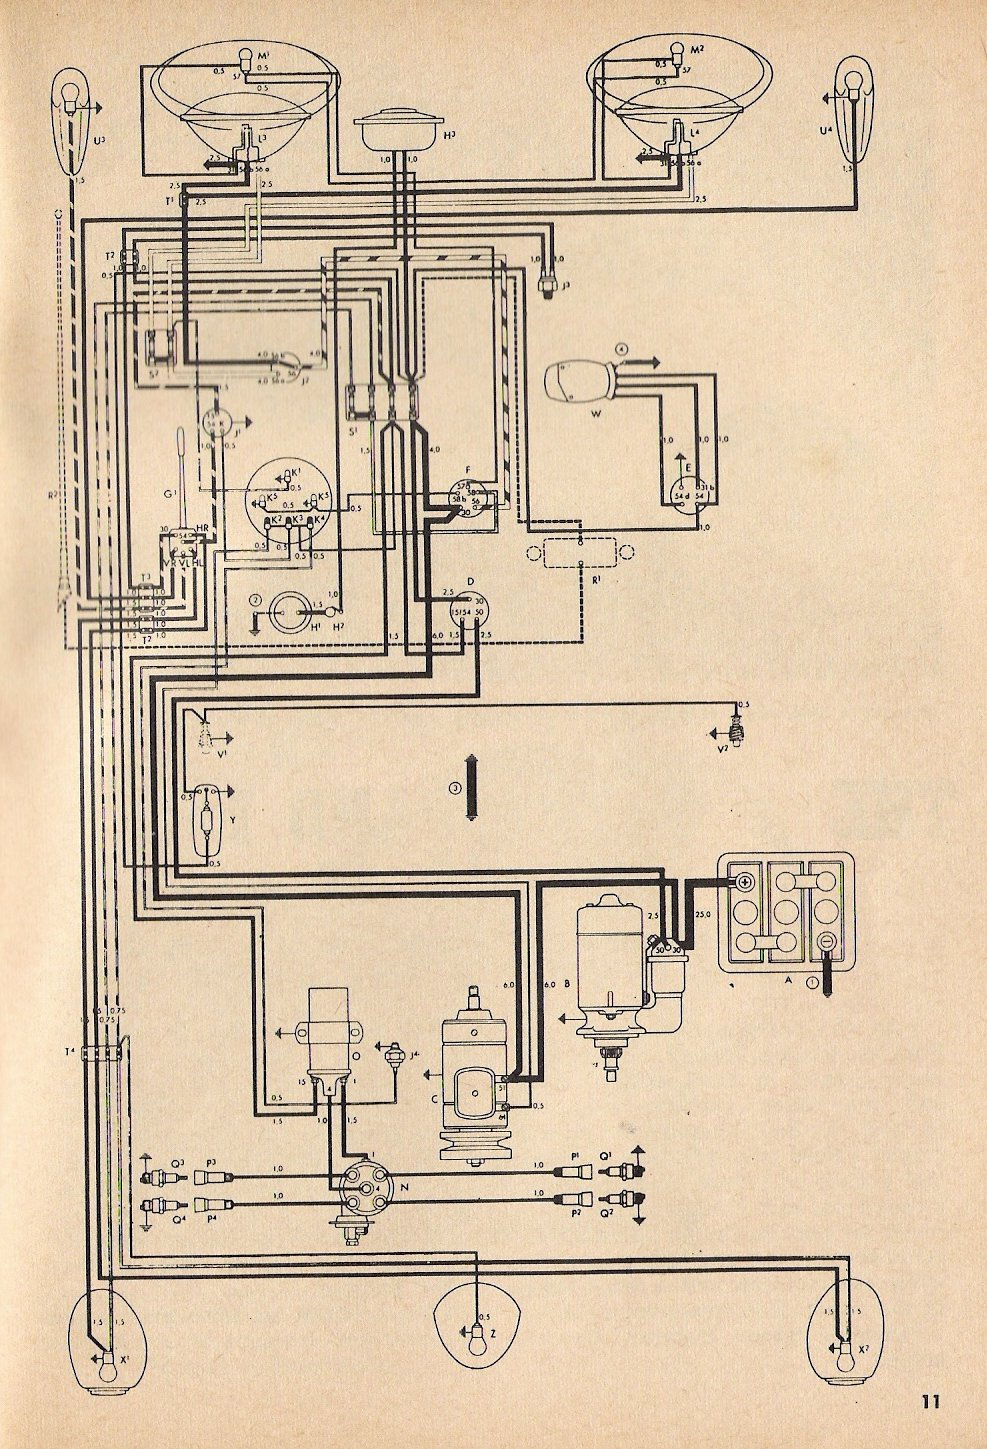 1968 Vw Fuse Diagram Type 1 Wiring Diagrams